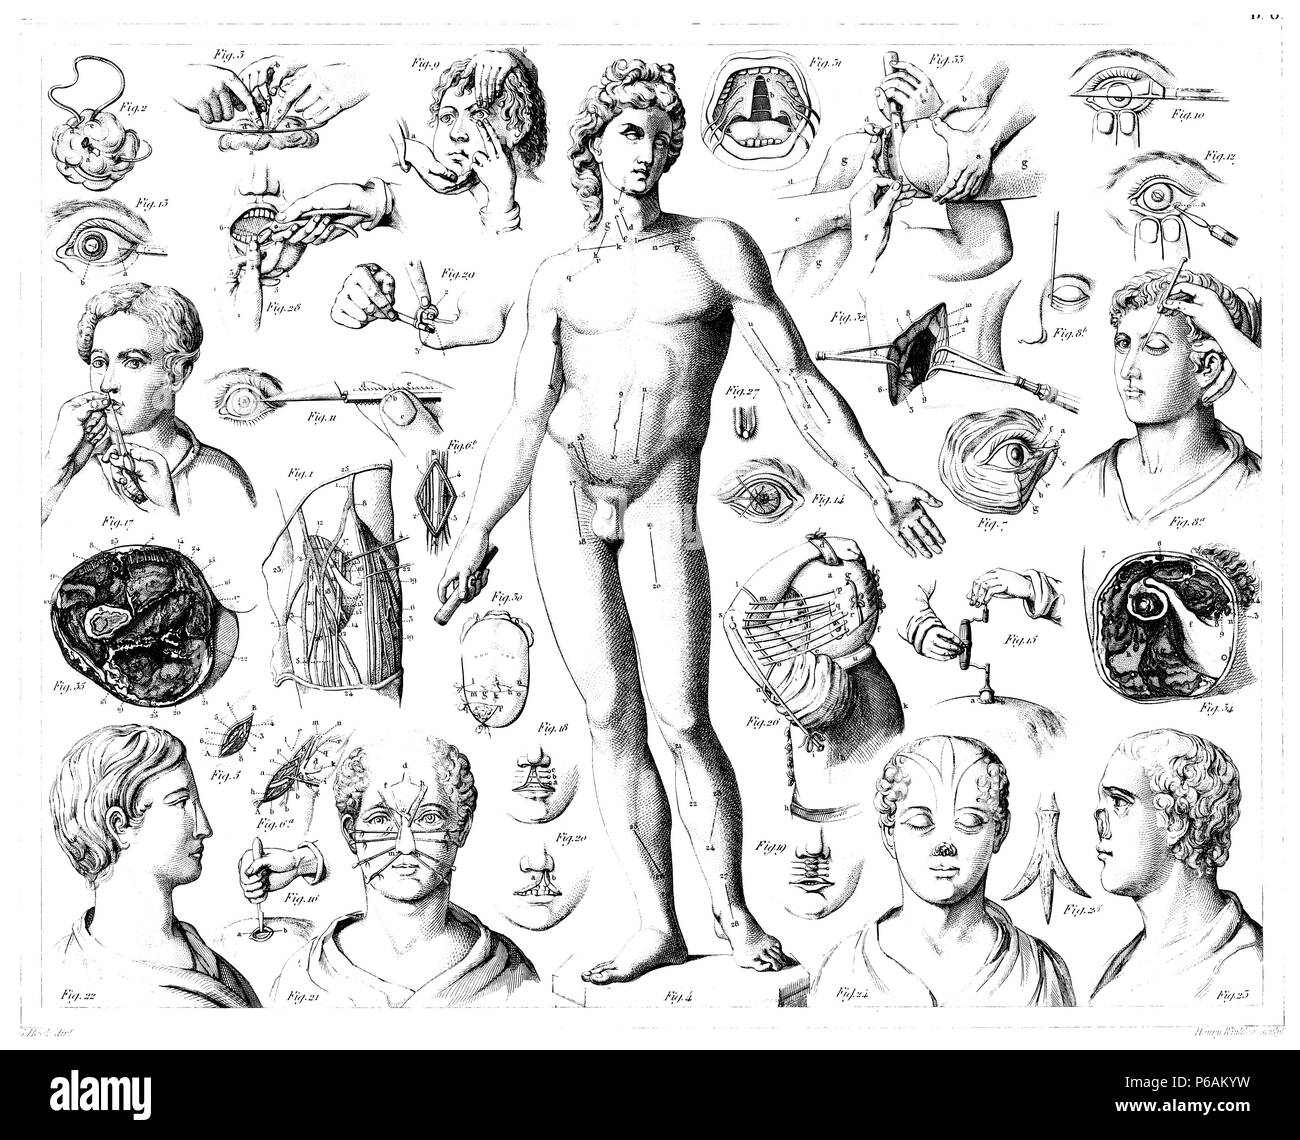 Operations on humans, Heck u. Henry Winkles - Stock Image